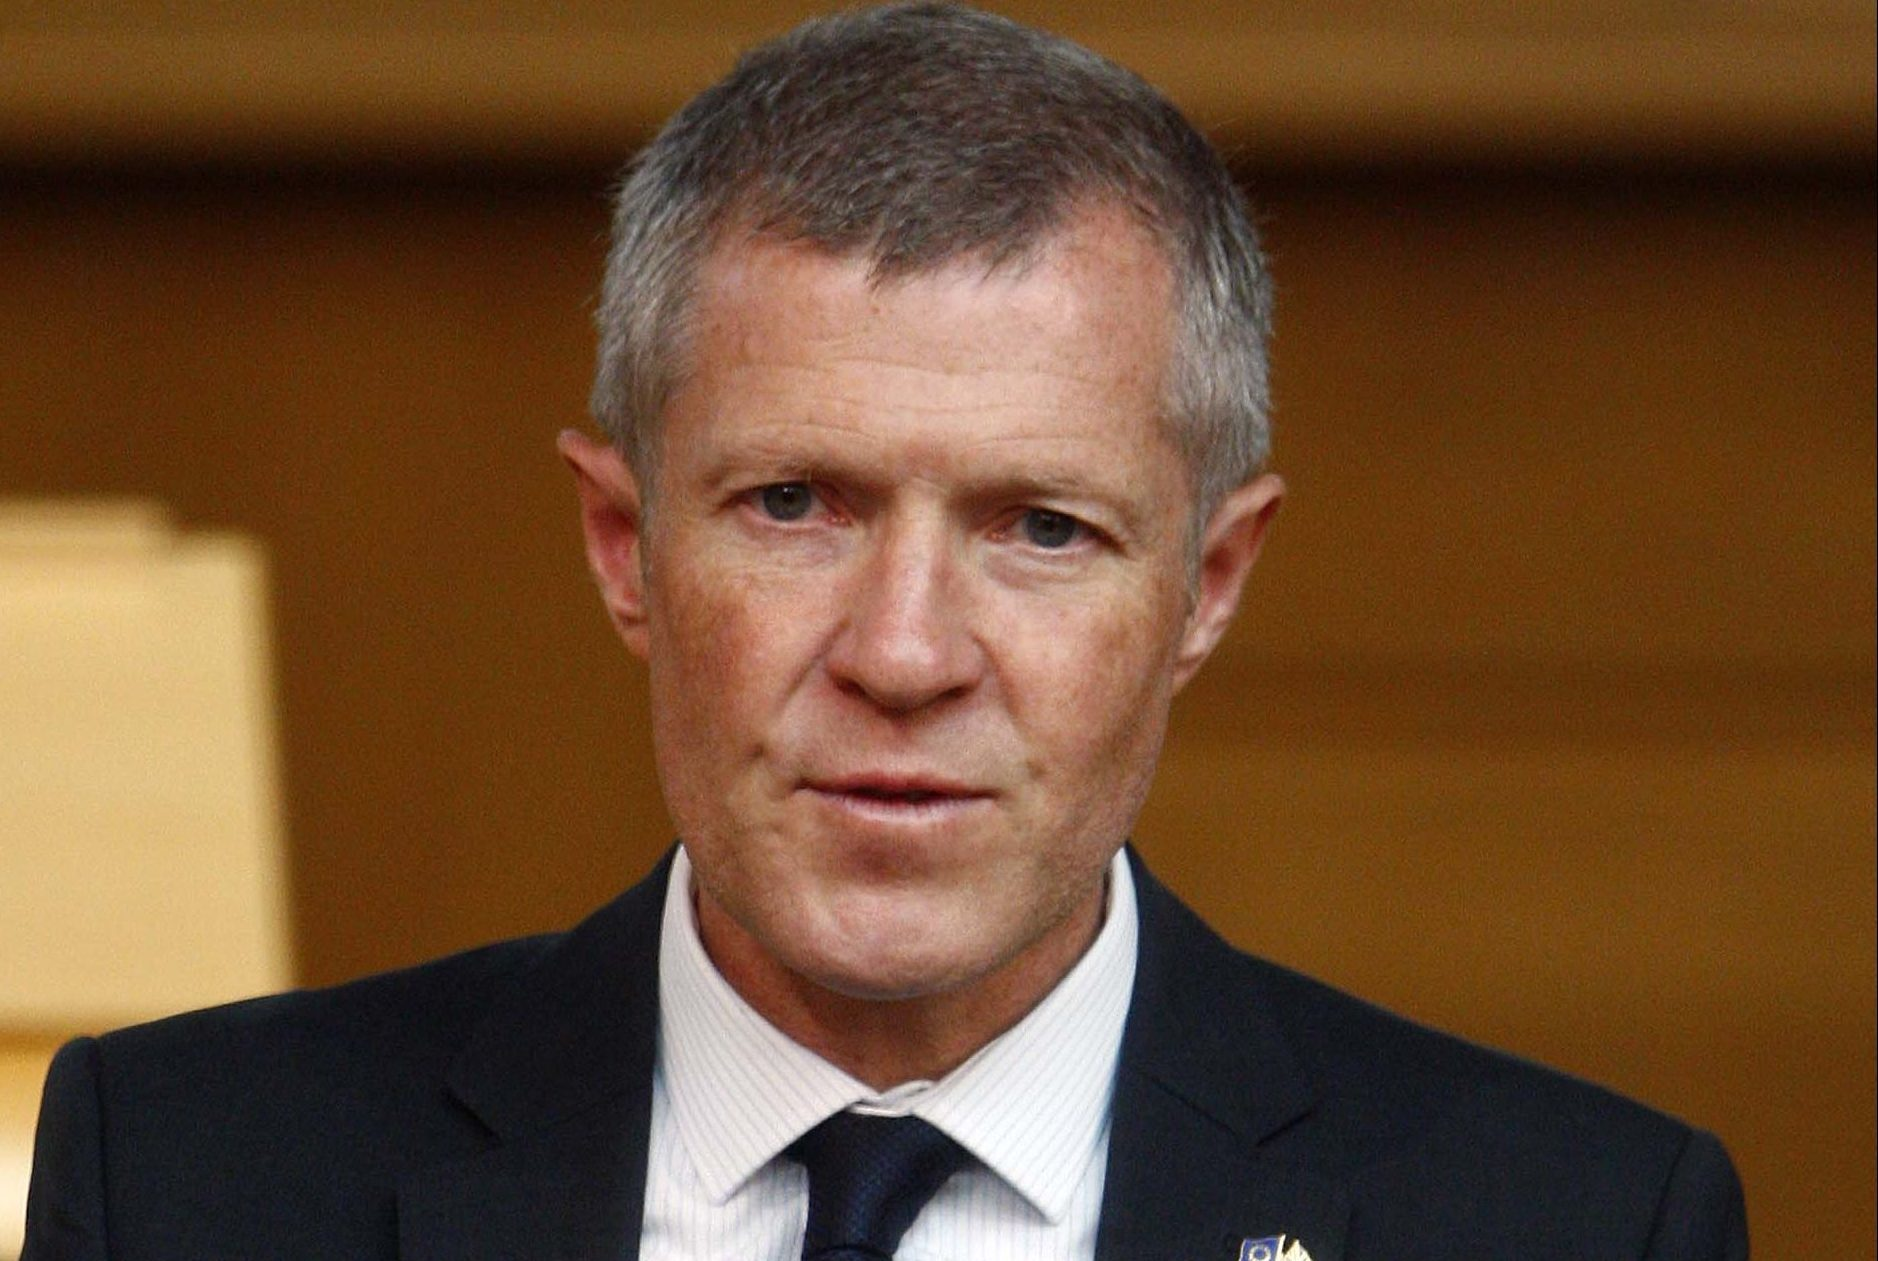 Leader of the Scottish Liberal Democrats Willie Rennie MSP (Andrew Cowan/Scottish Parliament)